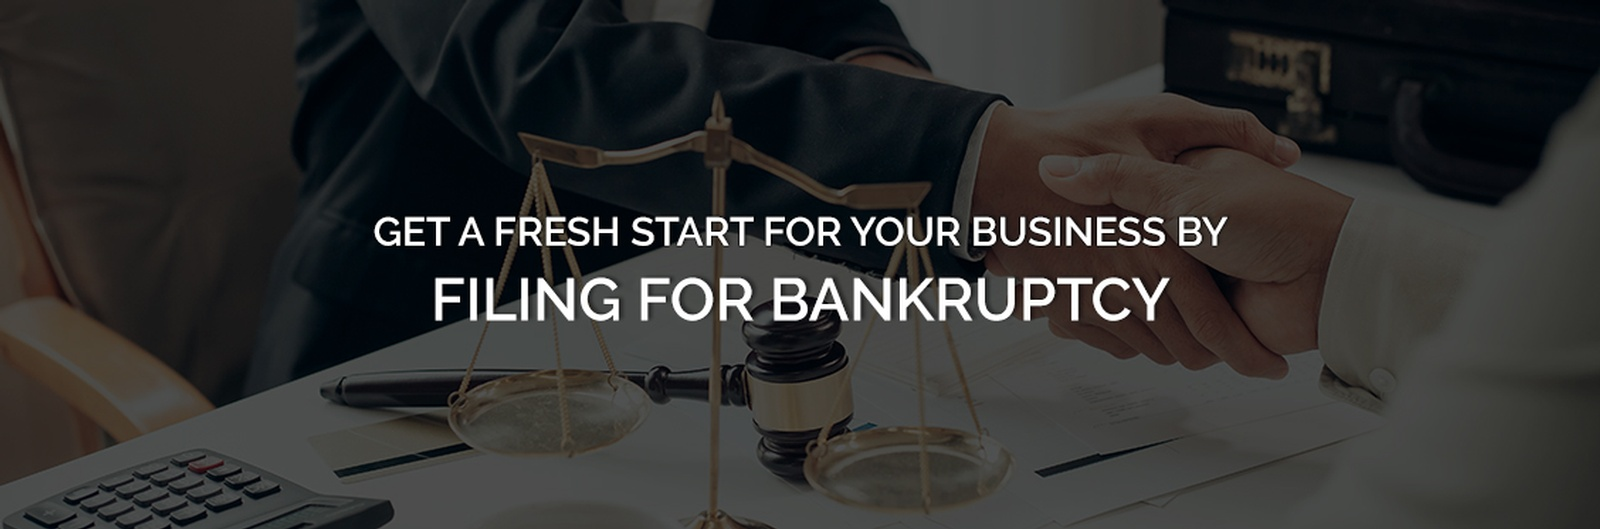 Business Bankruptcy Attorney St Cloud Minnesota